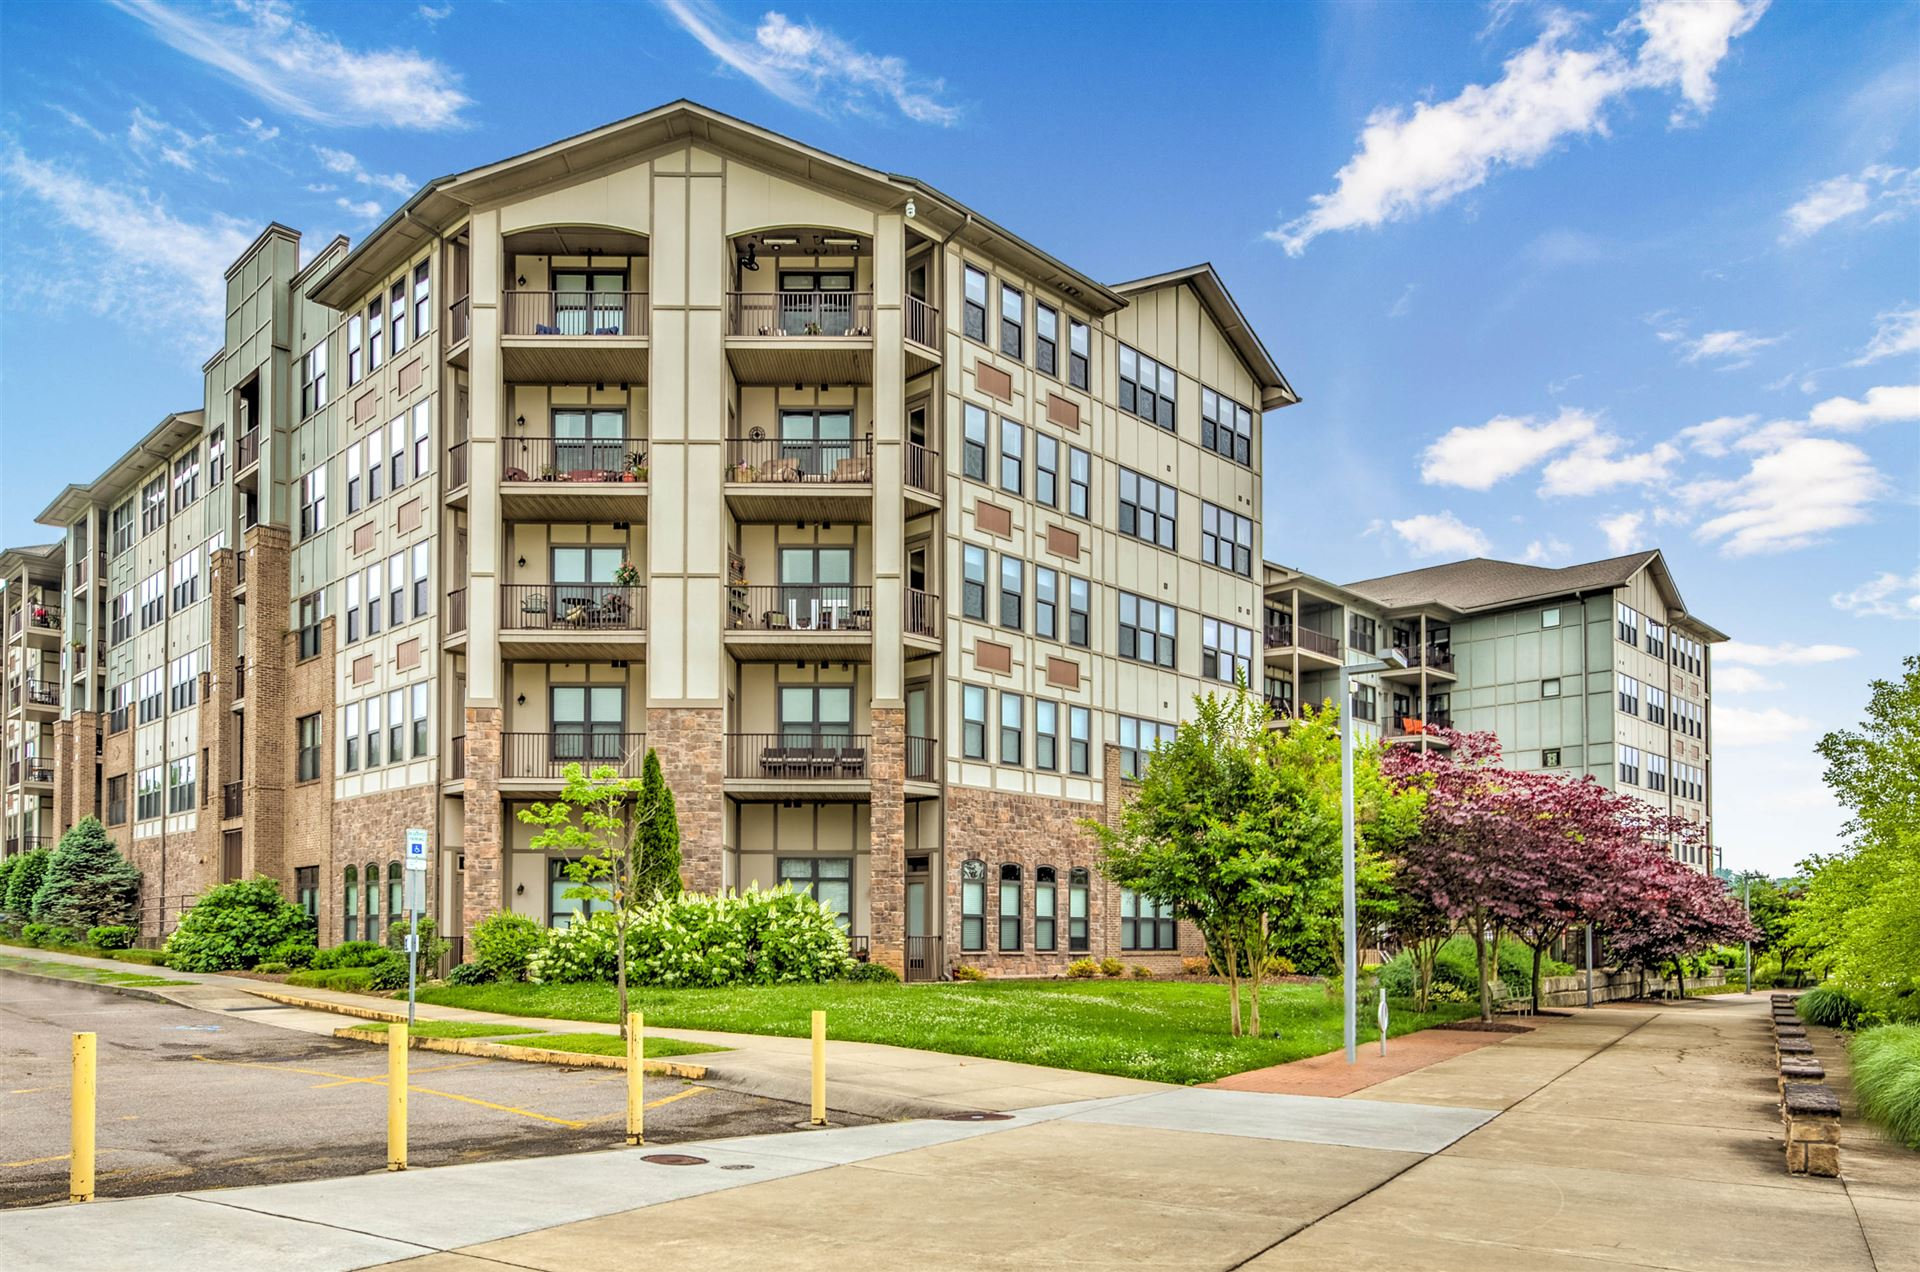 Photo for 445 W Blount Ave #Apt 223, Knoxville, TN 37920 (MLS # 1117797)